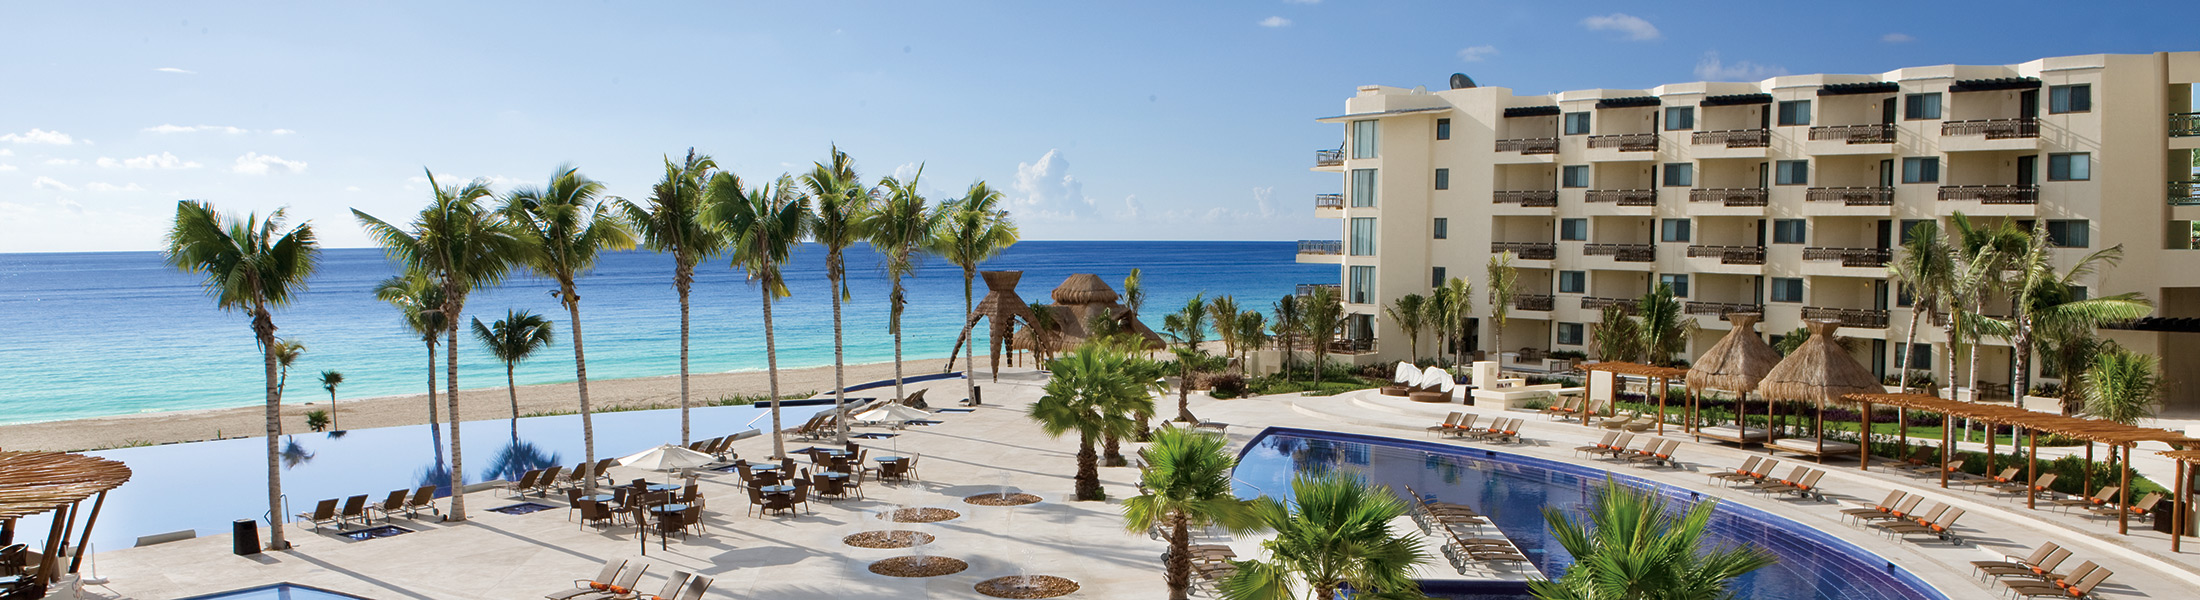 Aerial view of the main pool and beach at Dreams Riviera Cancun